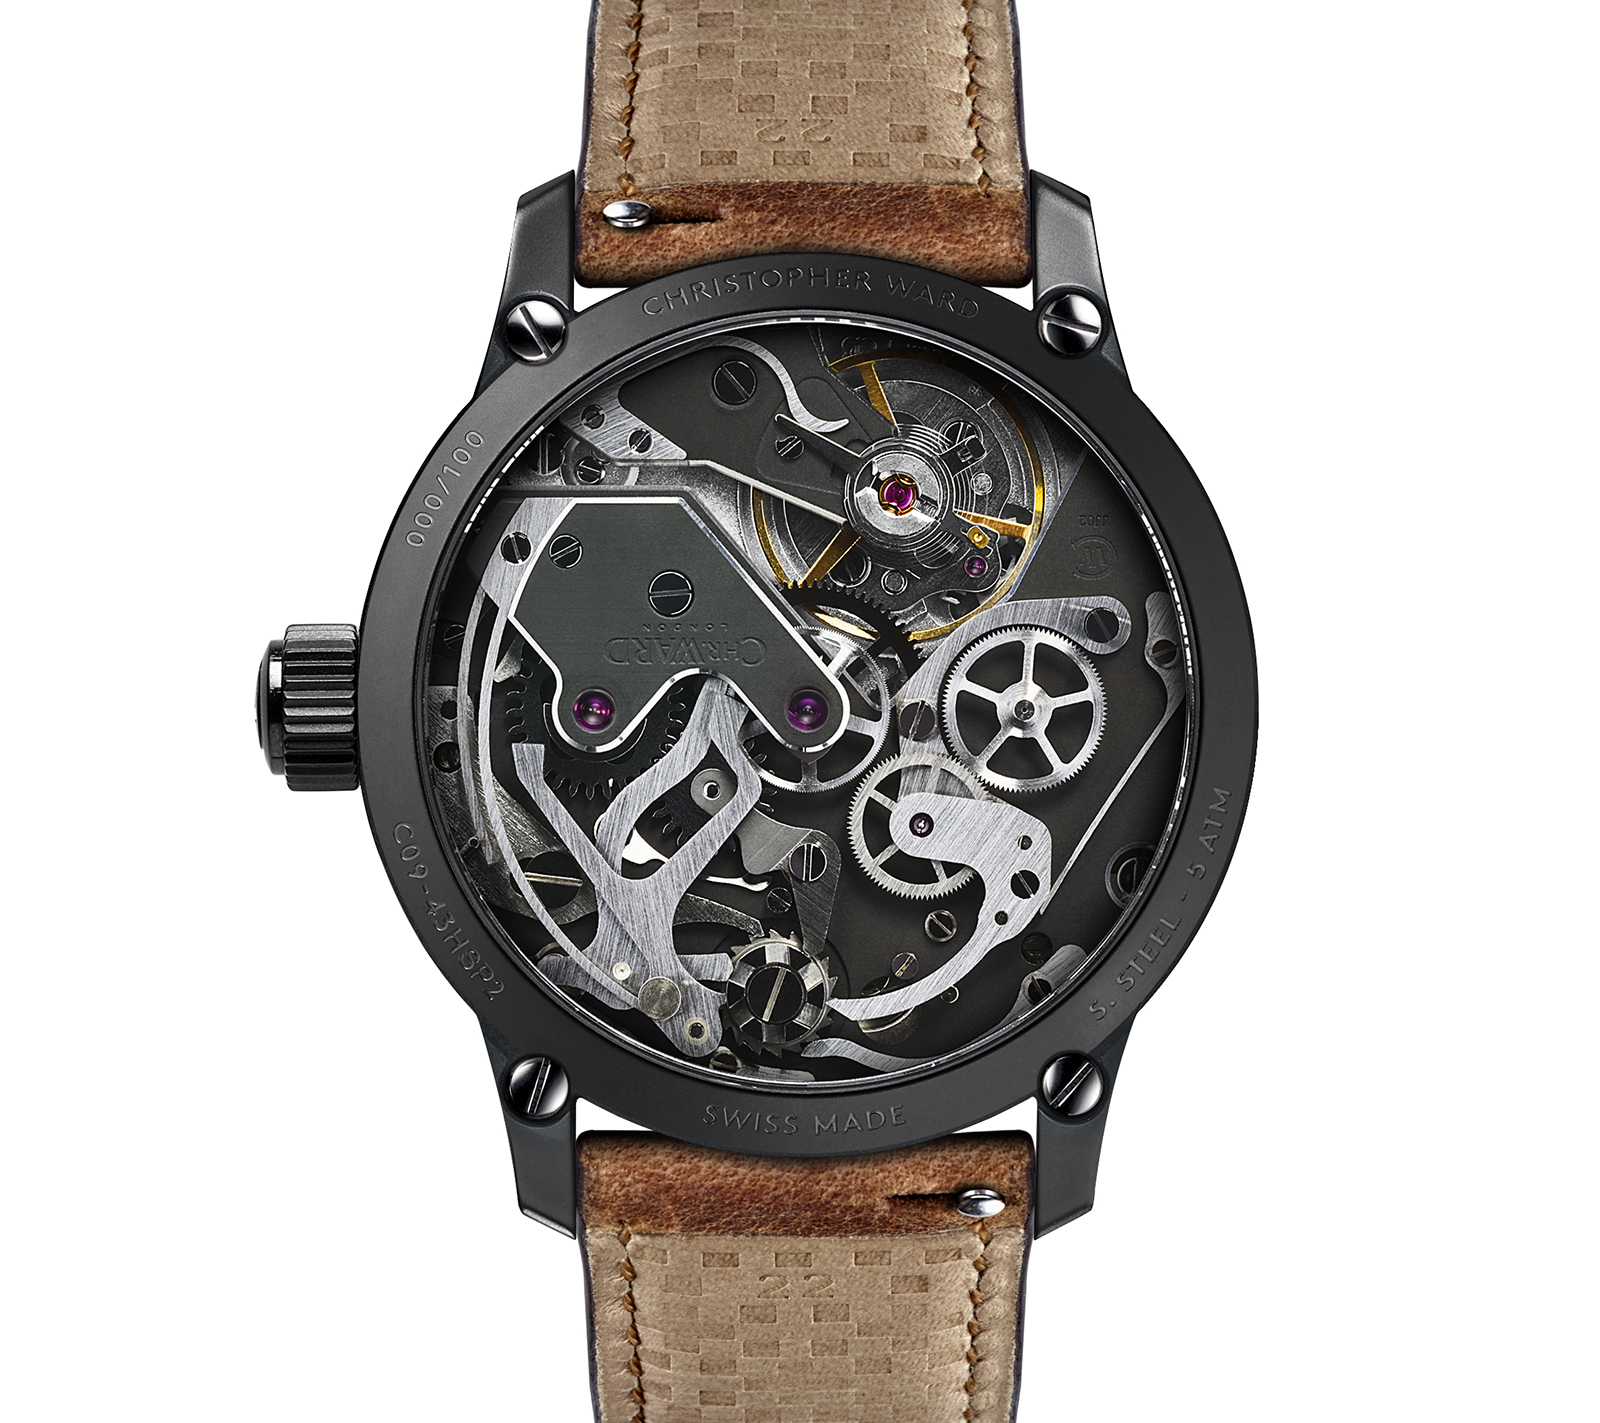 Christopher Ward C9 Me 109 Single Pusher Chronograph movement